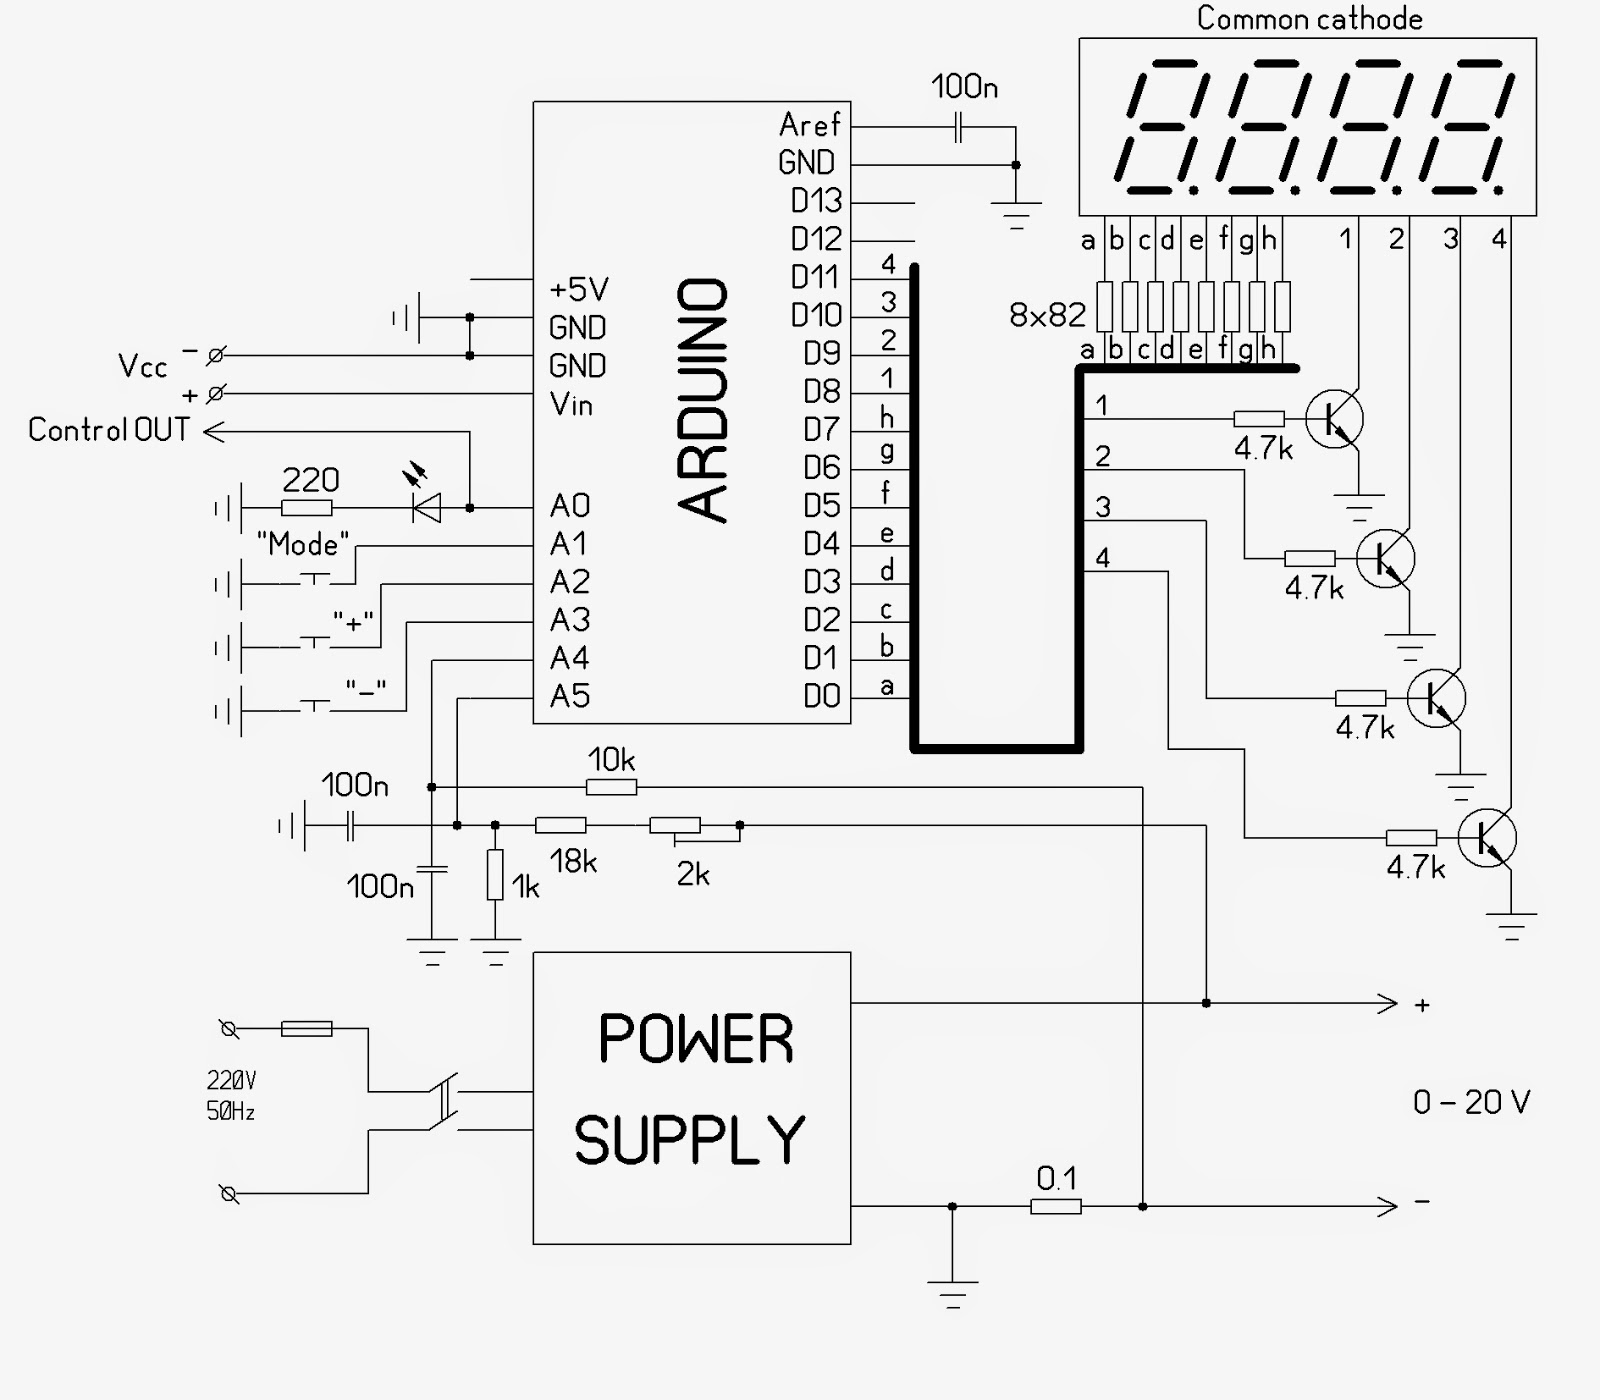 volt amp meter wiring diagram for led